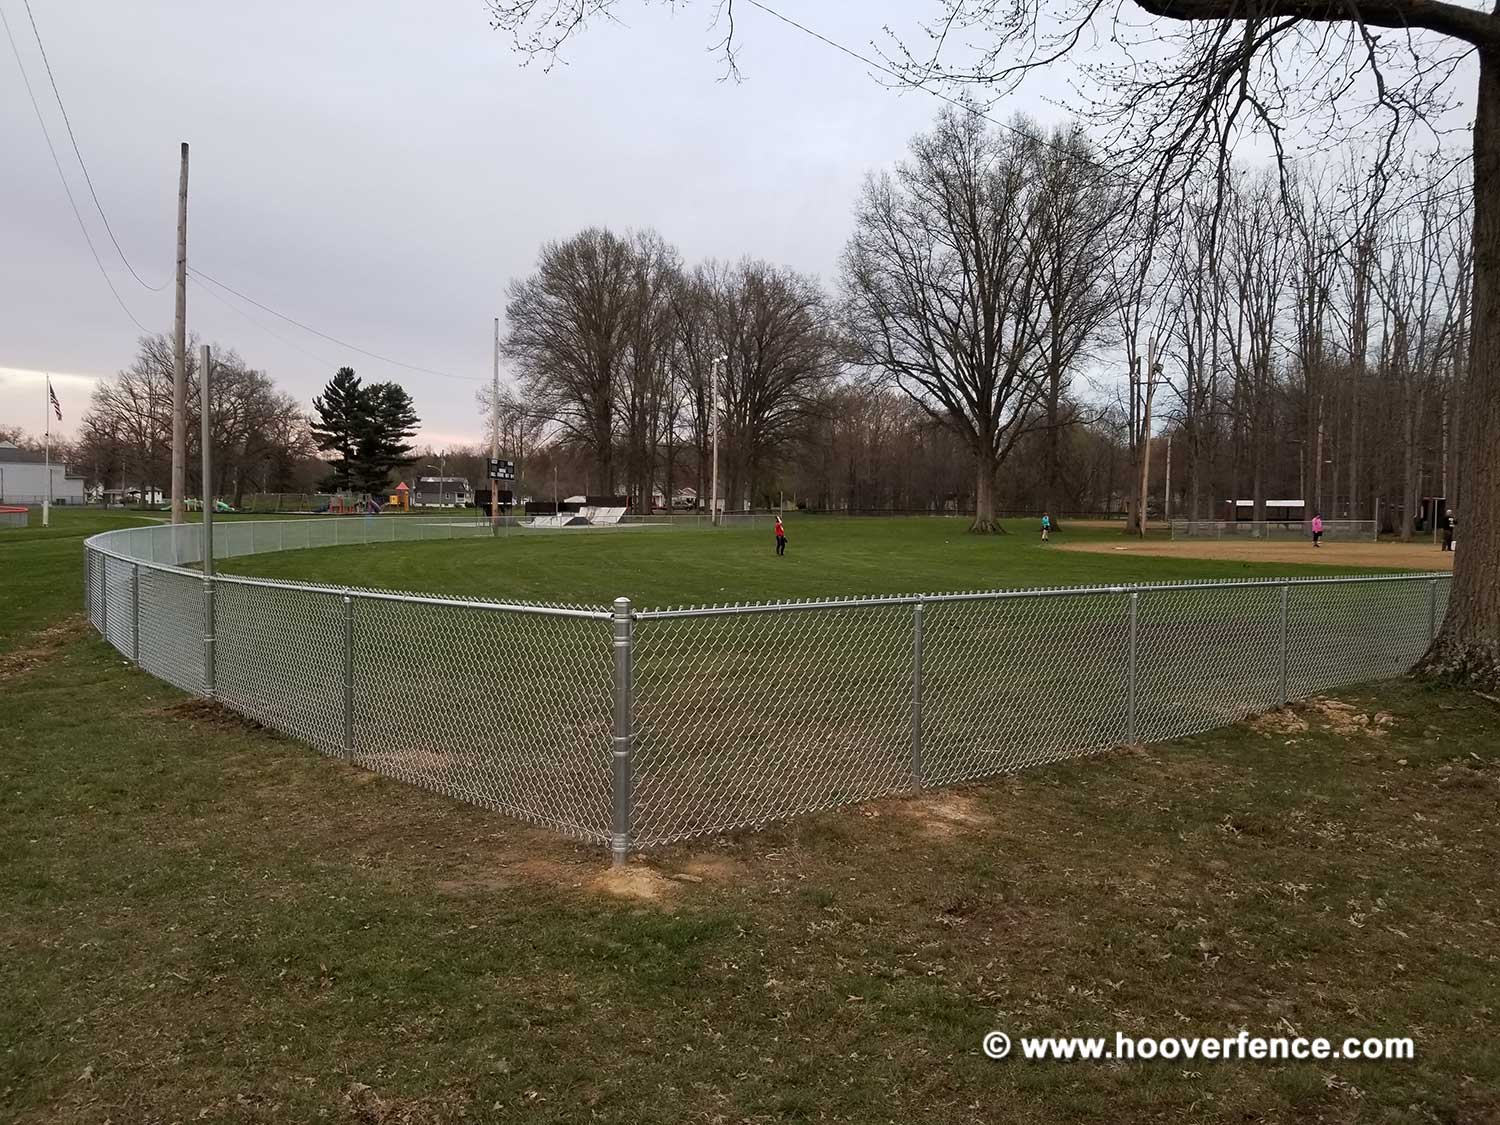 Hoover Fence Co Installation Baseball Sideline Fence - Field 3 - Newton Falls, OH